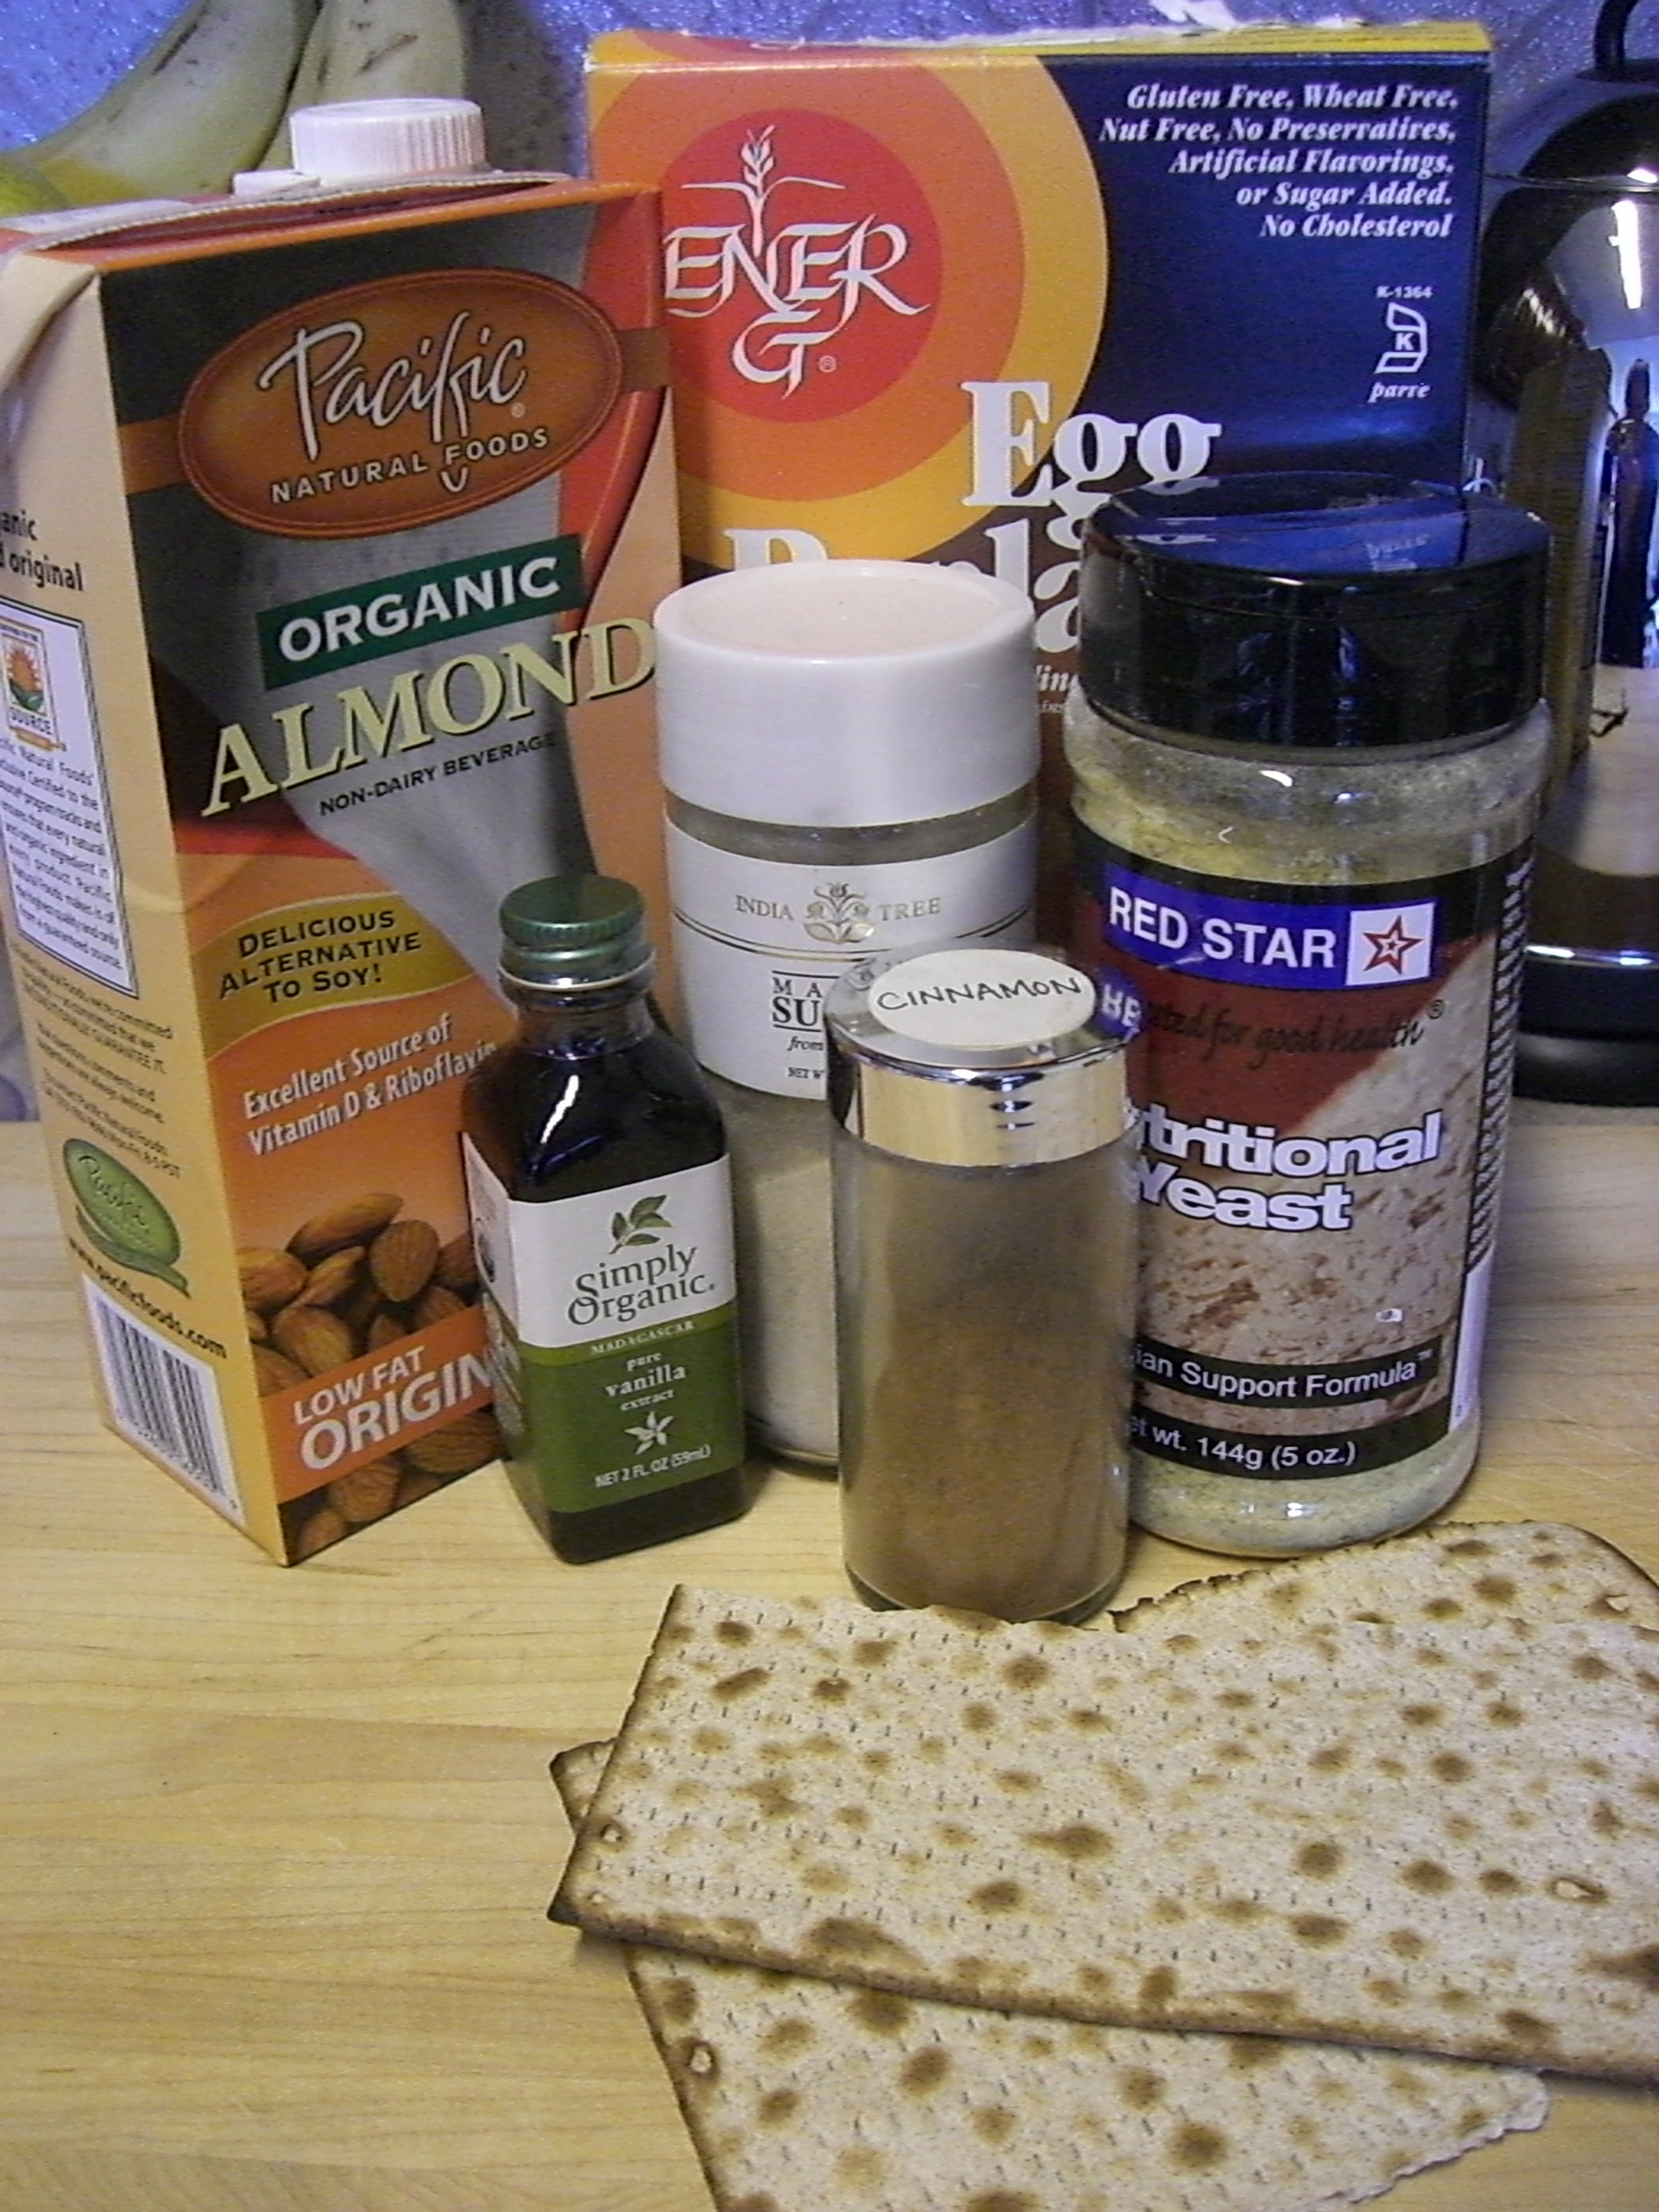 Vegan Matza Brei ingredients.